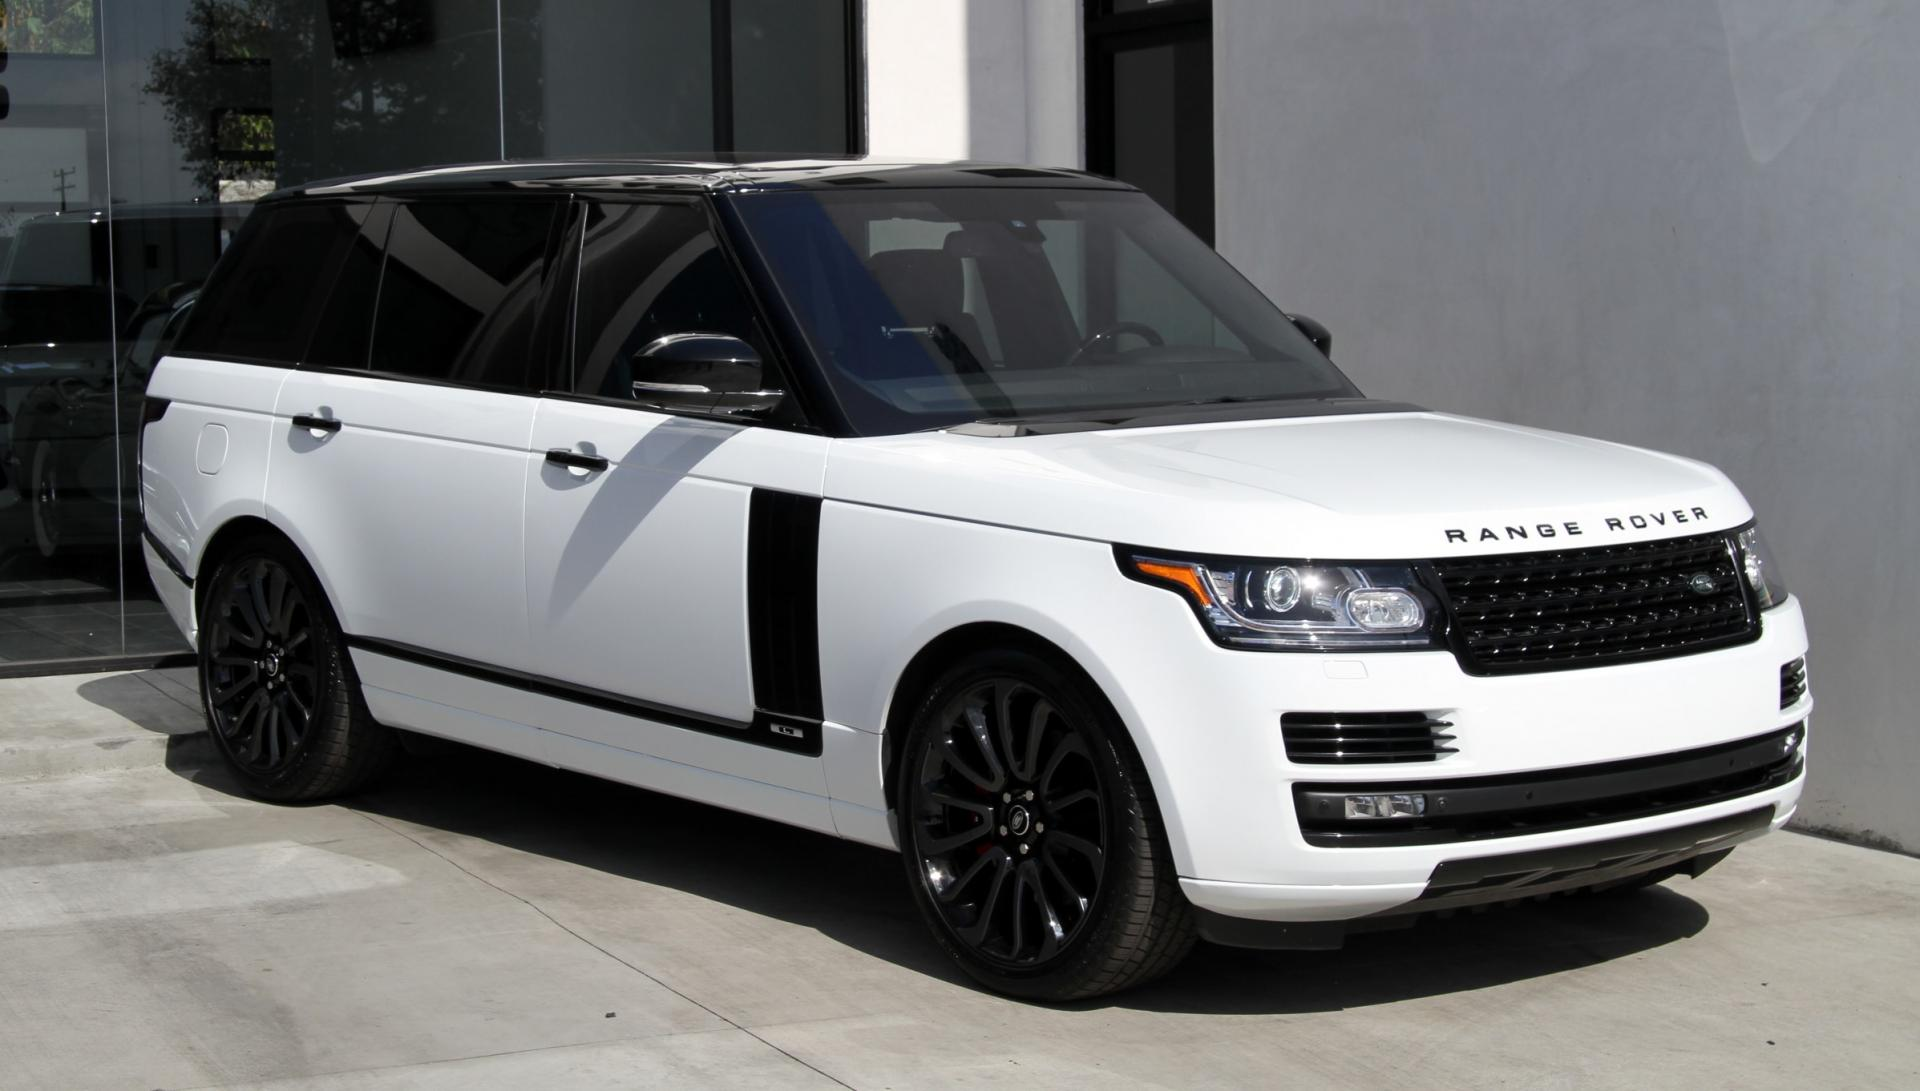 2015 Land Rover Range Rover Supercharged  LONG WHEEL BASE  Stock  6375A for sale near